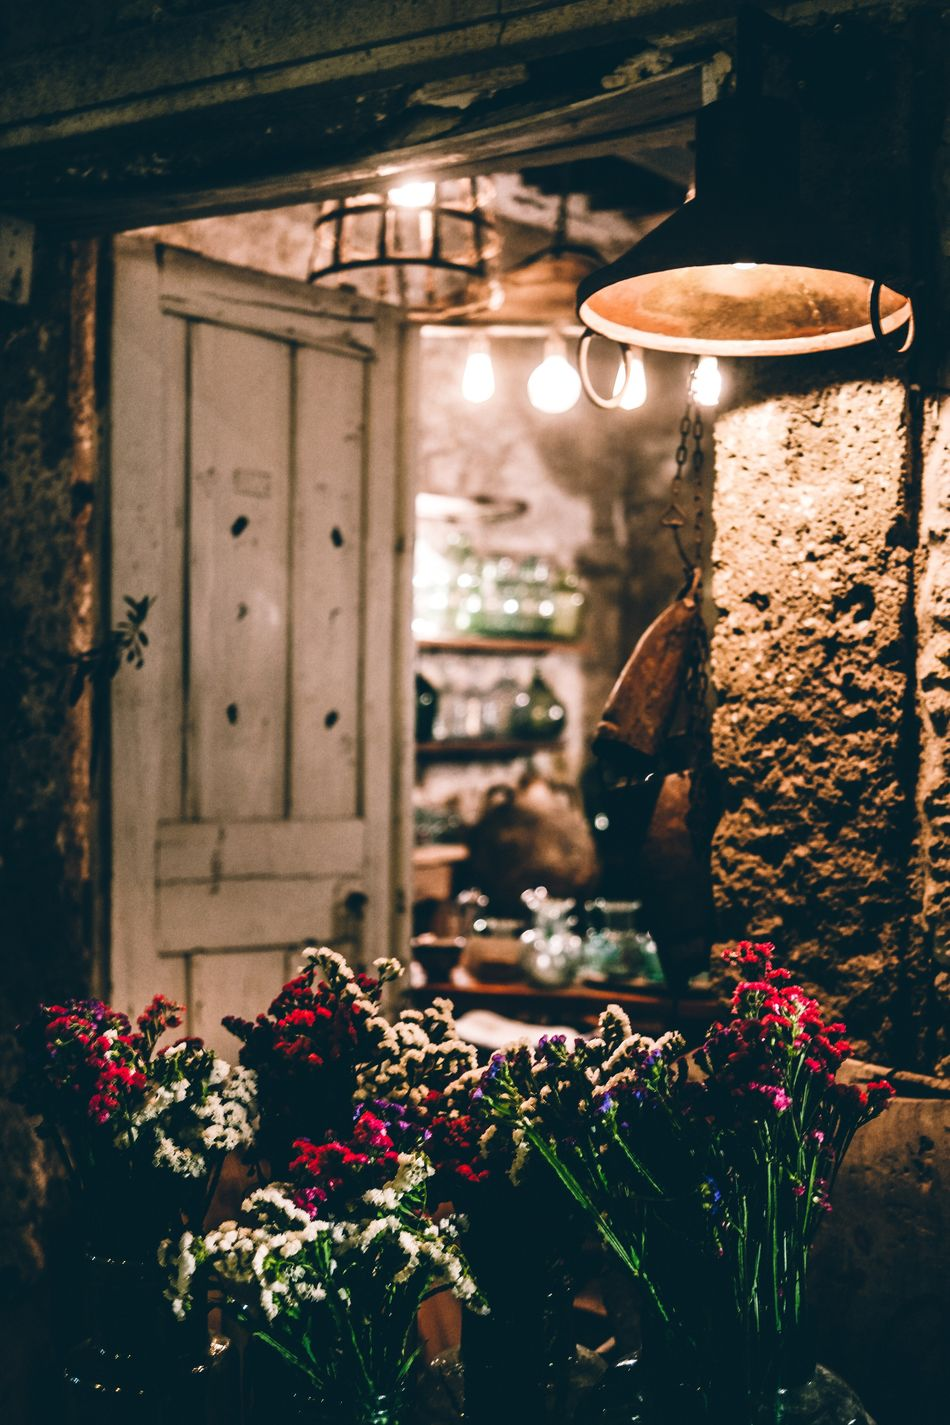 Door Stone The Great Outdoors - 2016 EyeEm Awards The Great Outdoors With Adobe The Essence Of Summer The Essence Of Summer- 2016 EyeEm Awards Summer Summertime Summer Views Alaçatı Flower Flowers Nightphotography Night Lights The Architect - 2016 EyeEm Awards The Street Photographer - 2016 EyeEm Awards